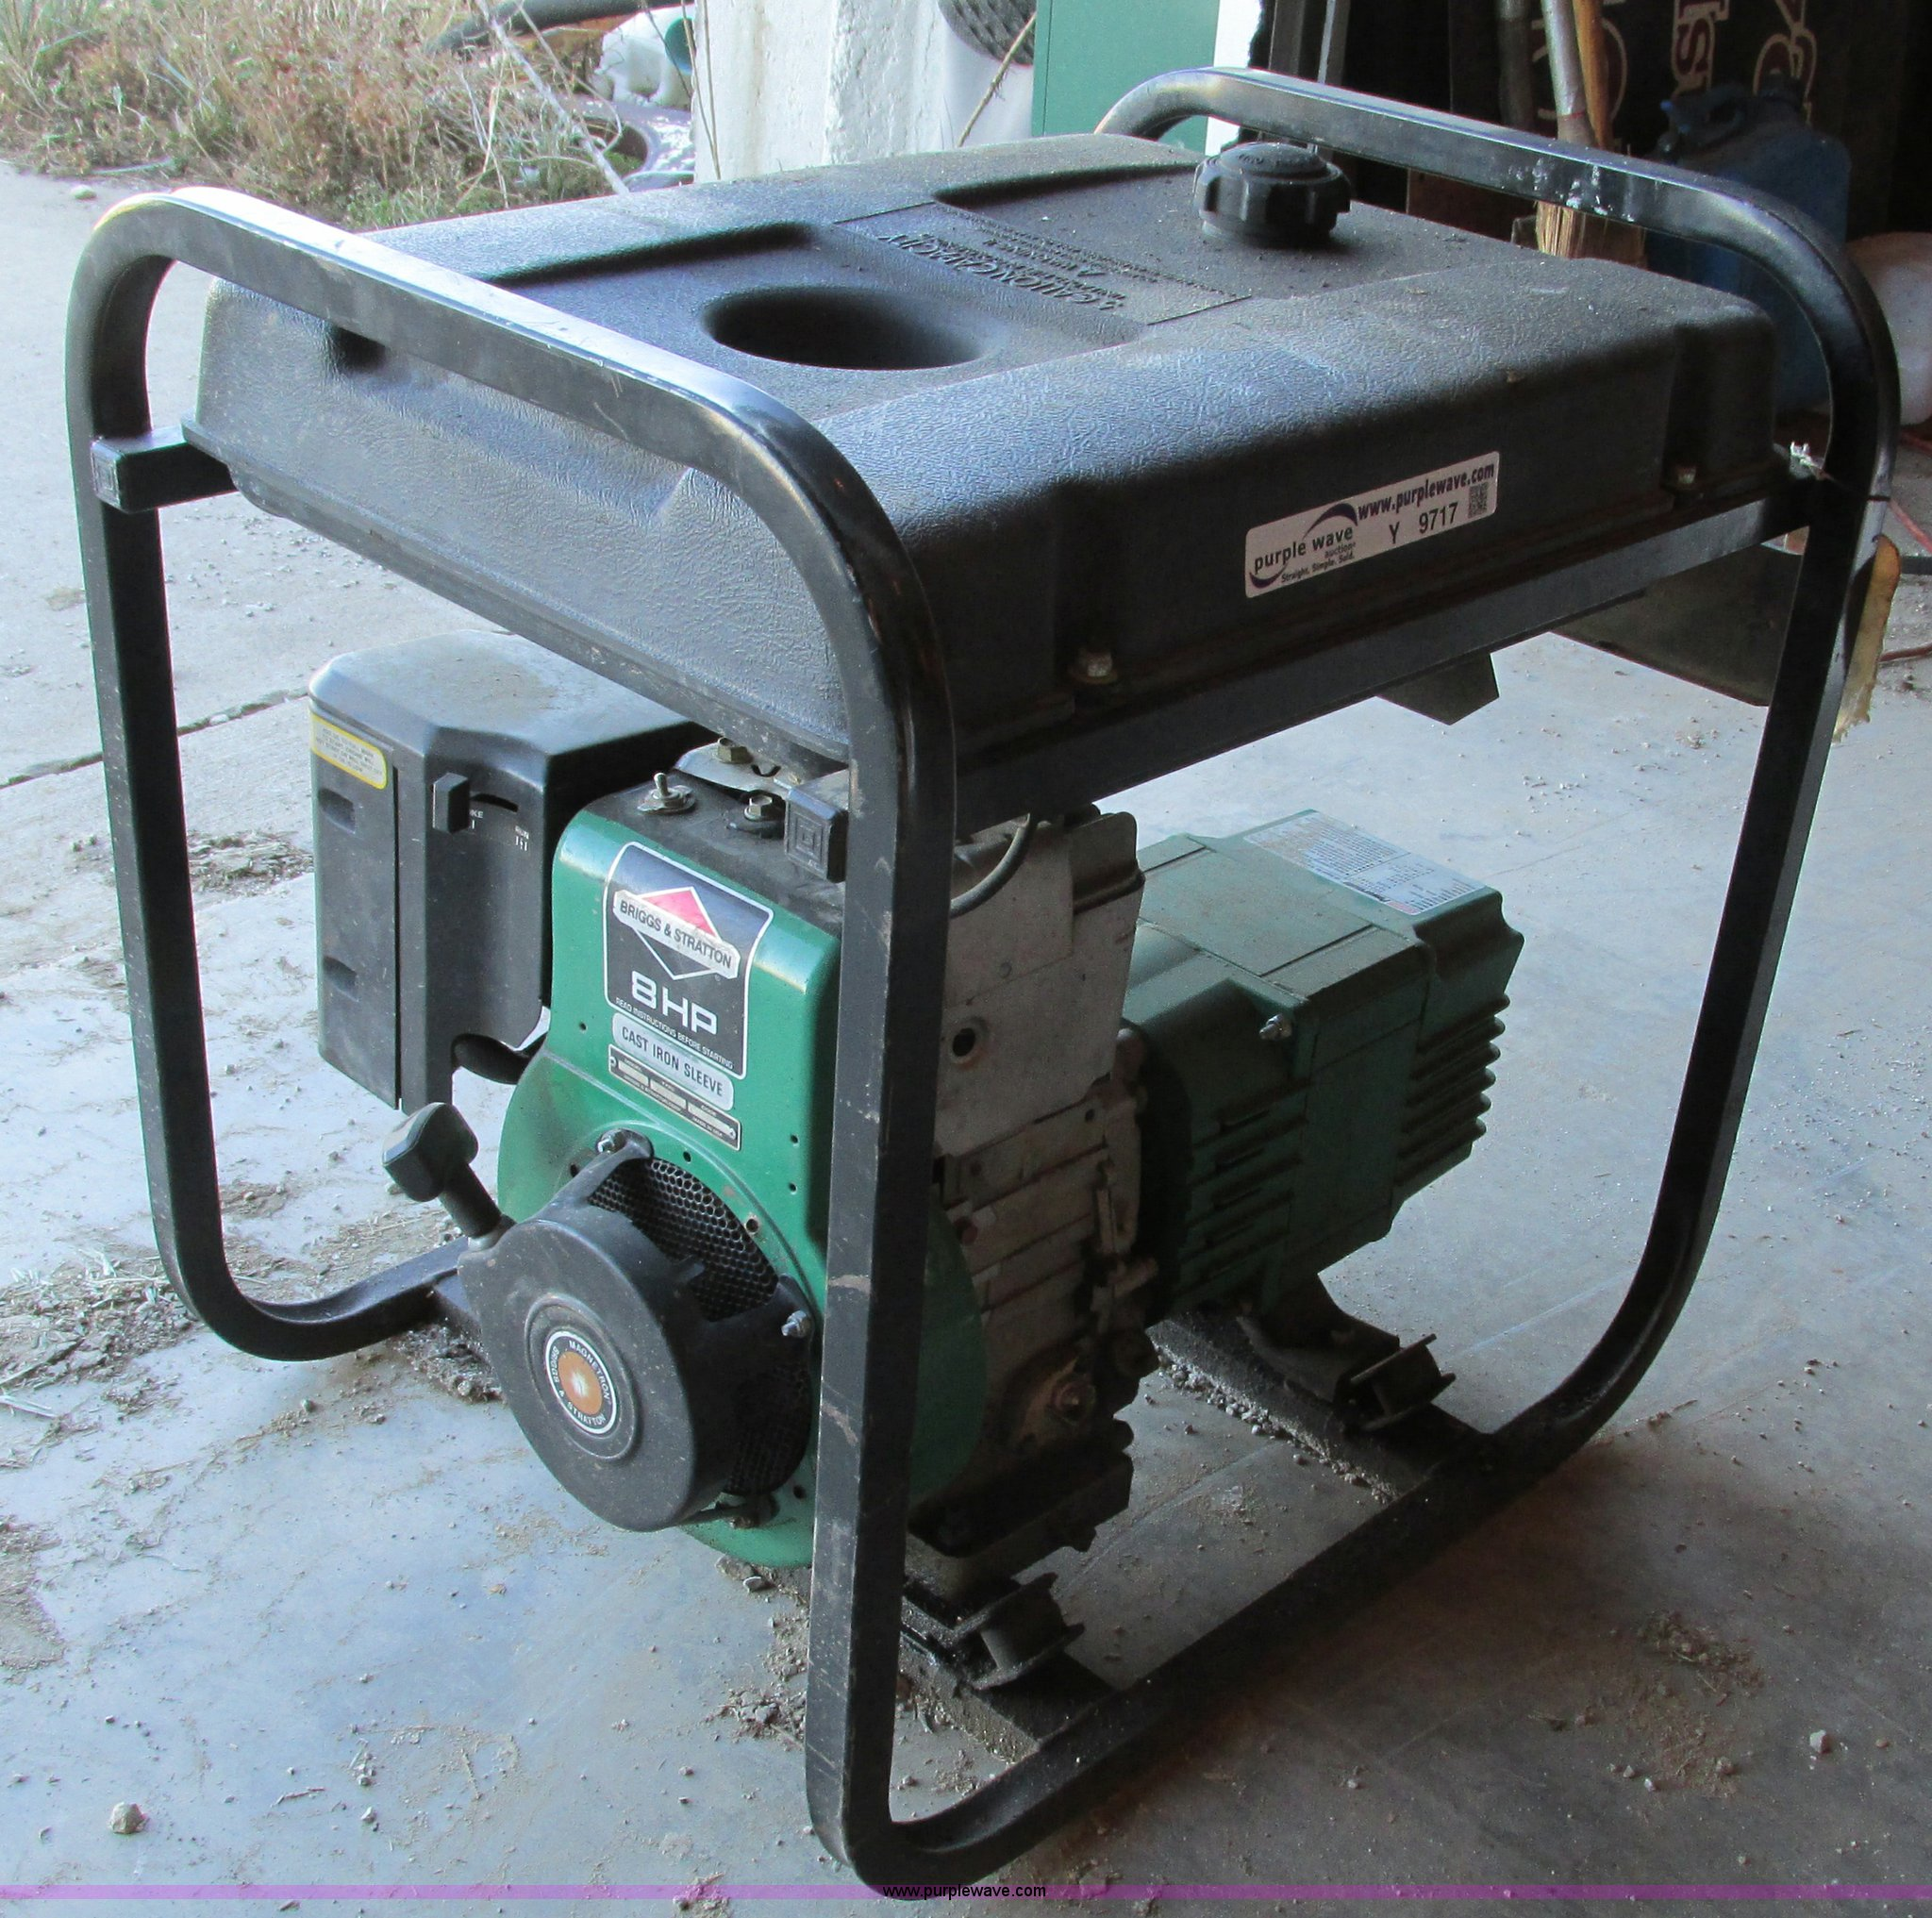 Coleman powermate 4000 generator item y9717 sold januar powermate 4000 generator full size in new window cheapraybanclubmaster Gallery